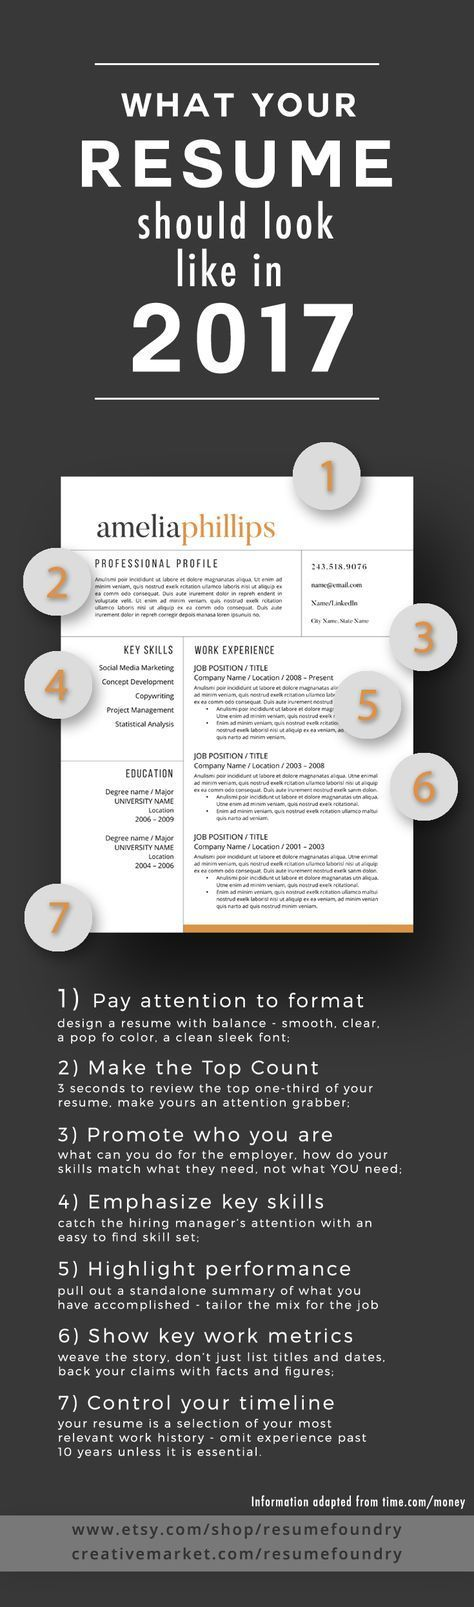 7 tips to transform your resume to 2017 Check out the article at - Articles On Resume Writing